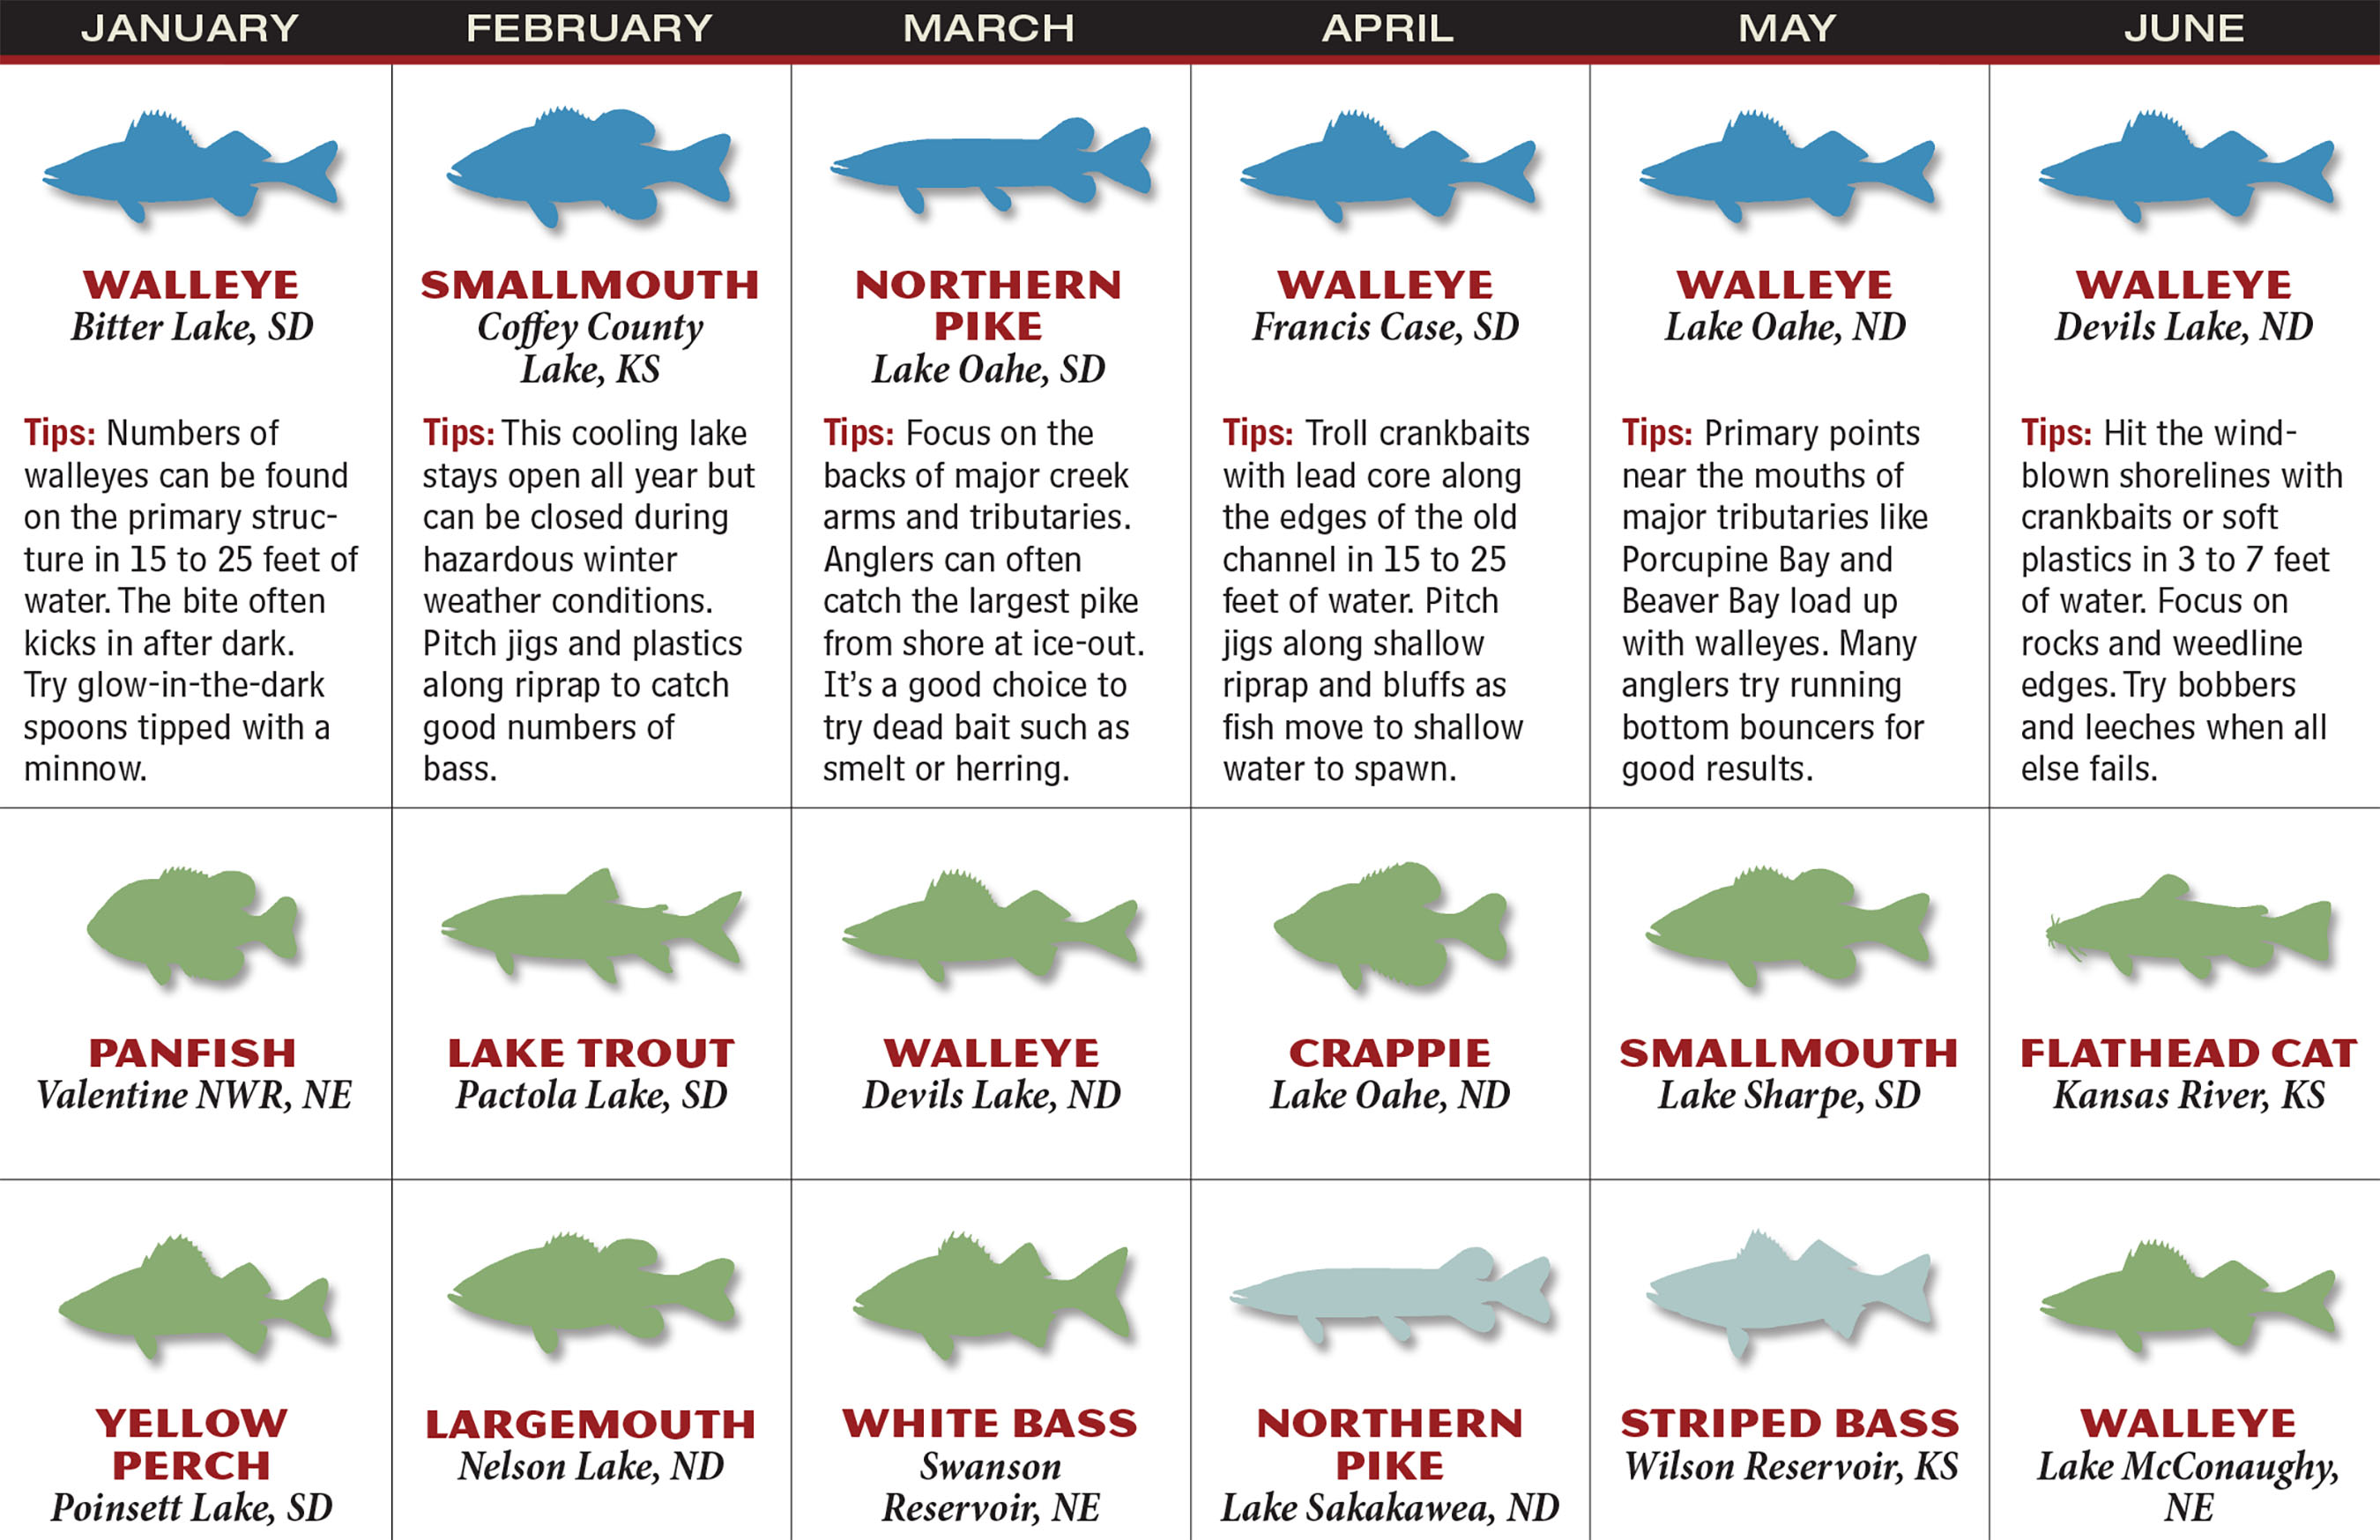 2017 great plains fishing forecast the sporting shoppe for Fishing forecast calendar